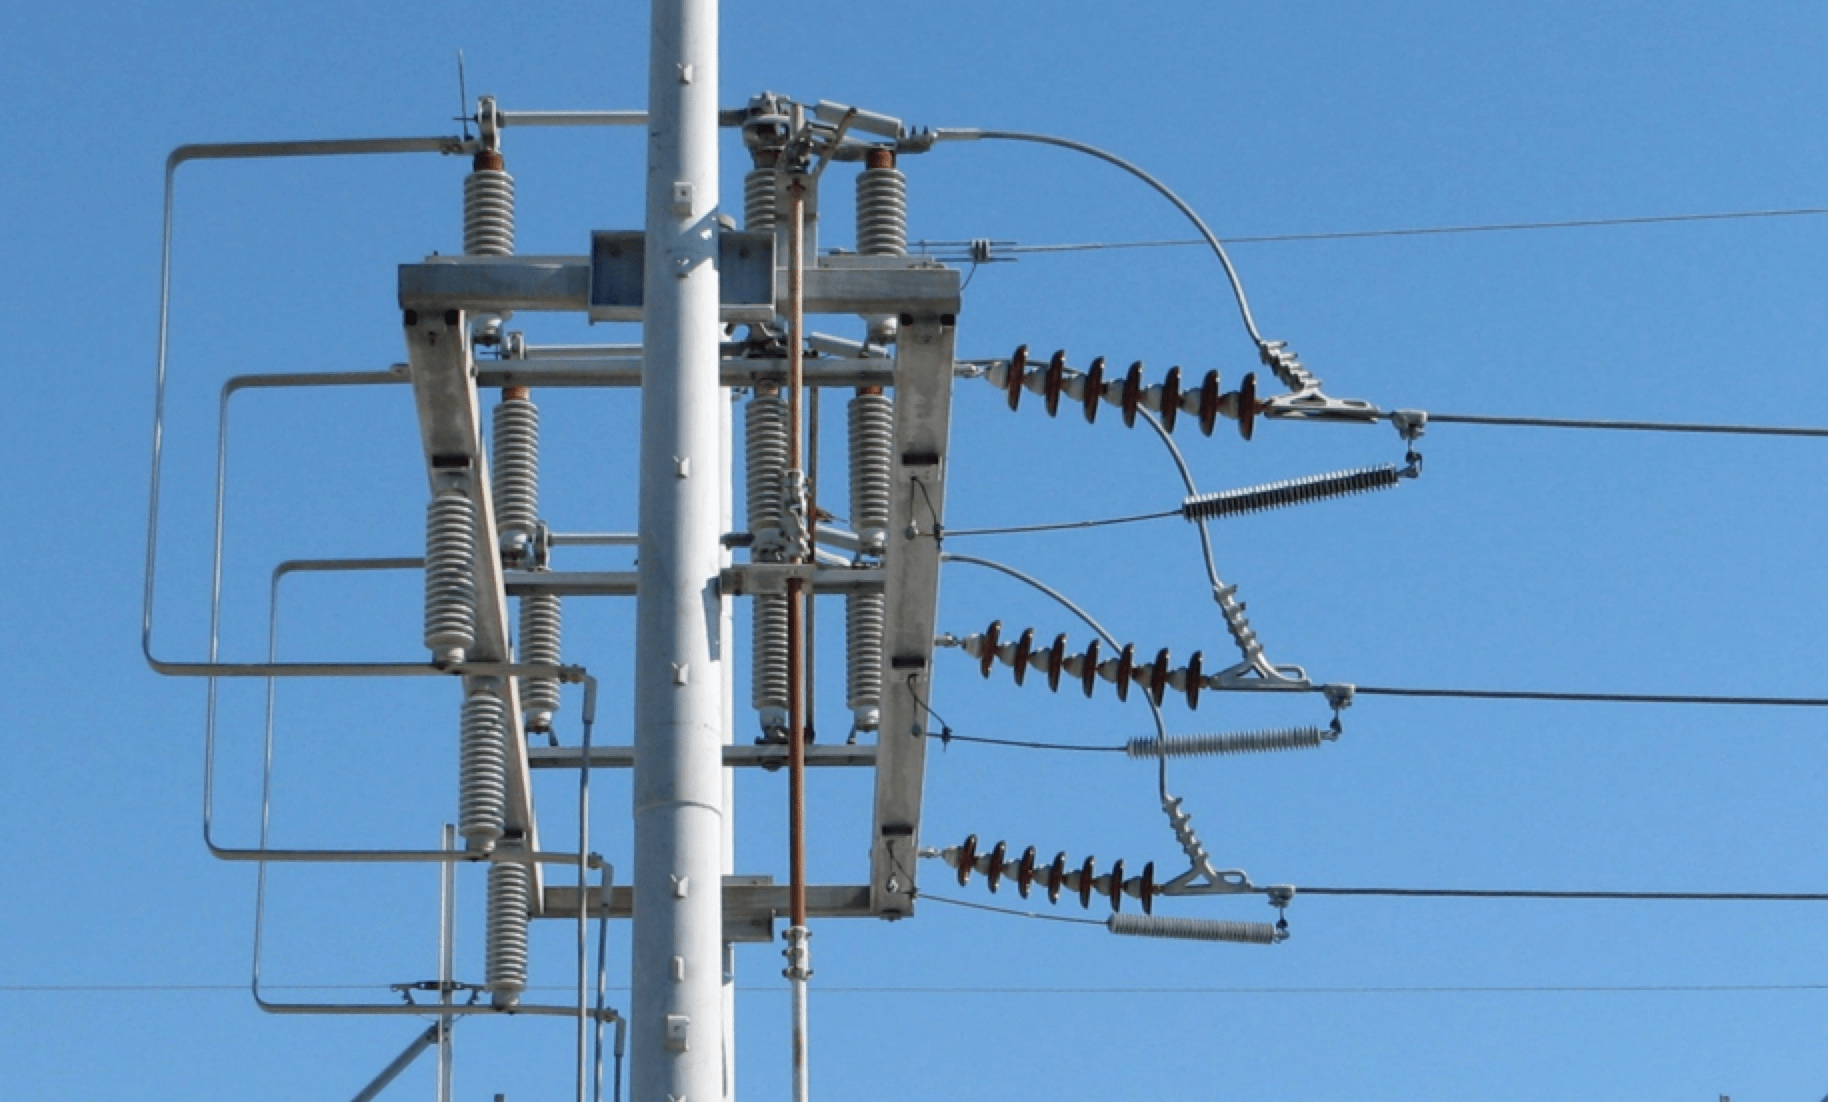 Fig. 6: TLSAs used here as line entrance arresters to protect open breaker.